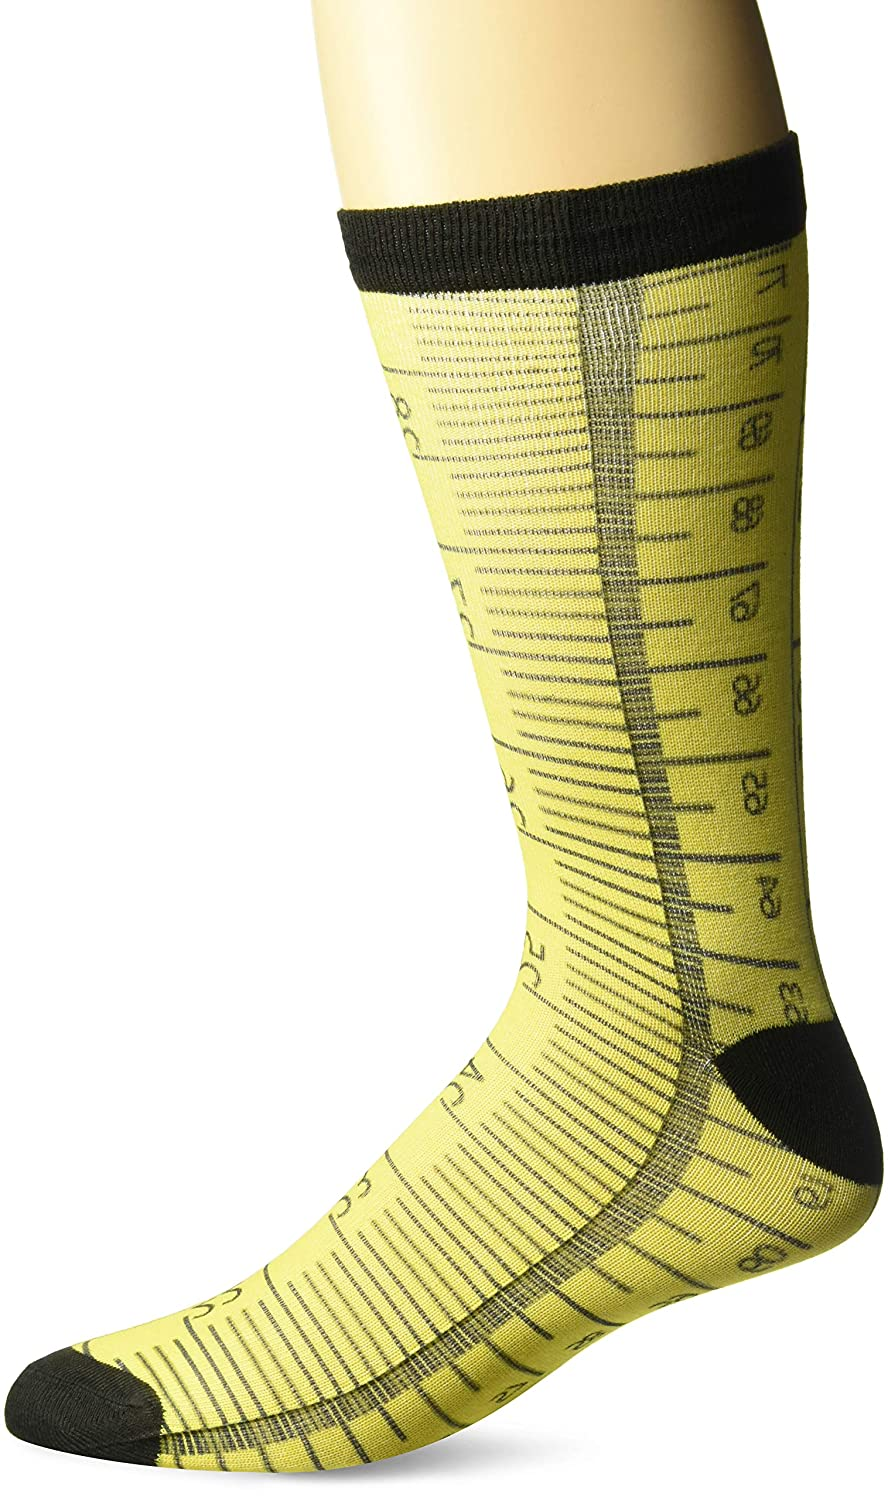 Sock Pair Polyester CREW Buckle-Down Inc SCK-PE-W33940-CREW Measuring Tape Yellow//Black//Red